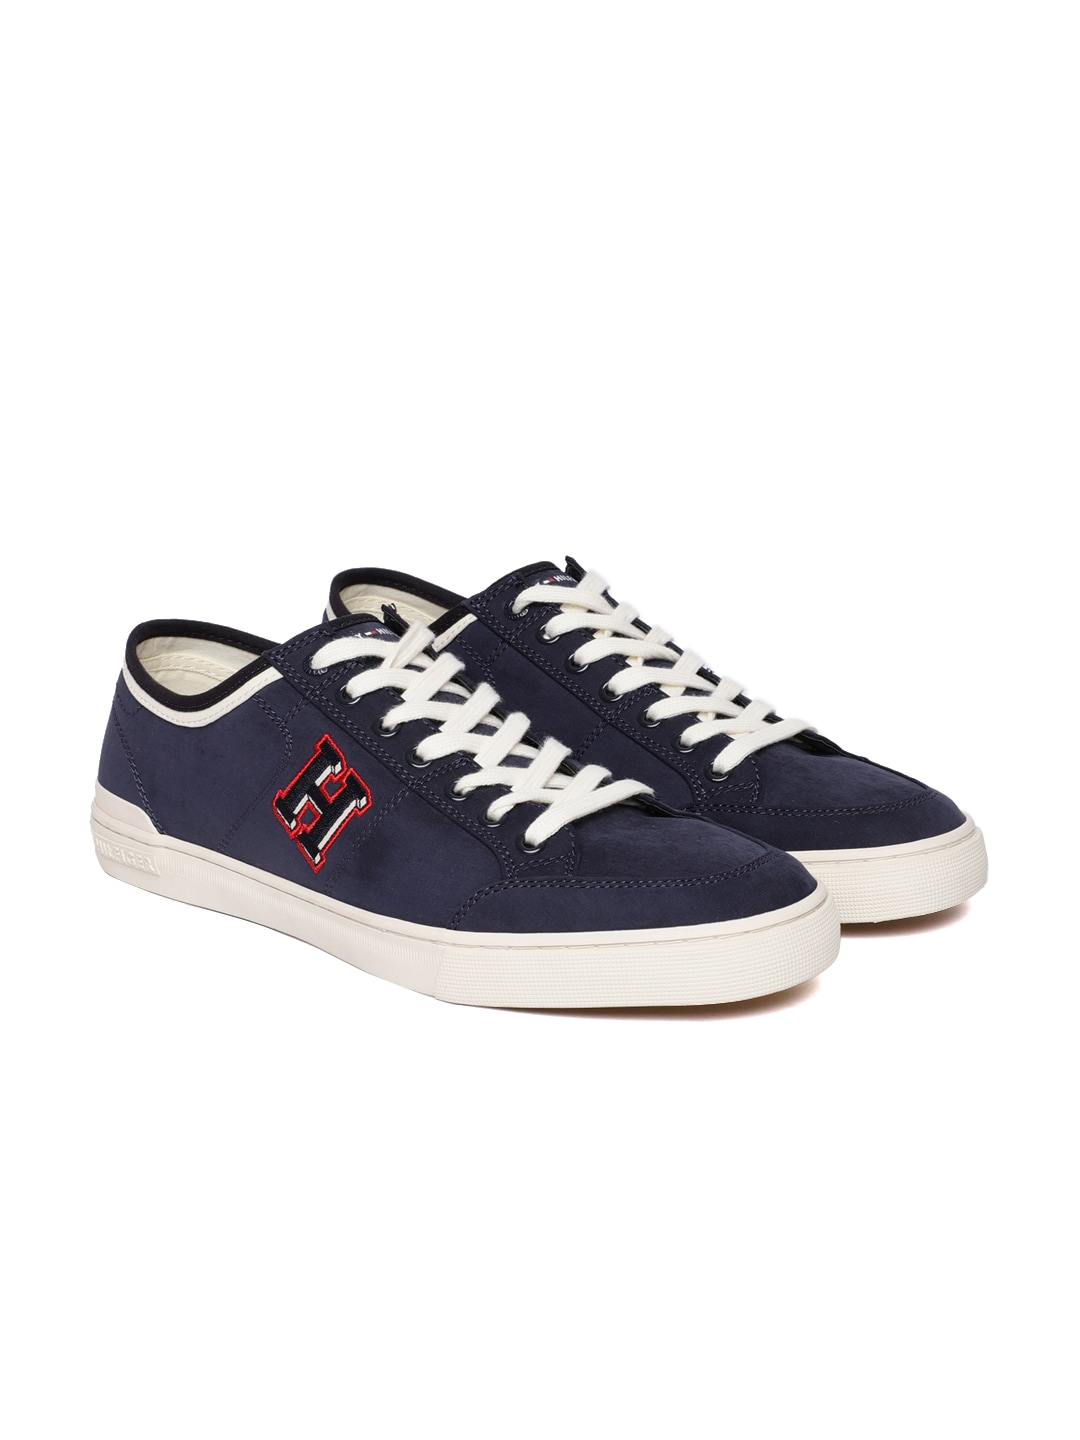 finest selection 20a9d af564 Tommy Hilfiger Shoes - Buy Tommy Hilfiger Shoes Online - Myntra